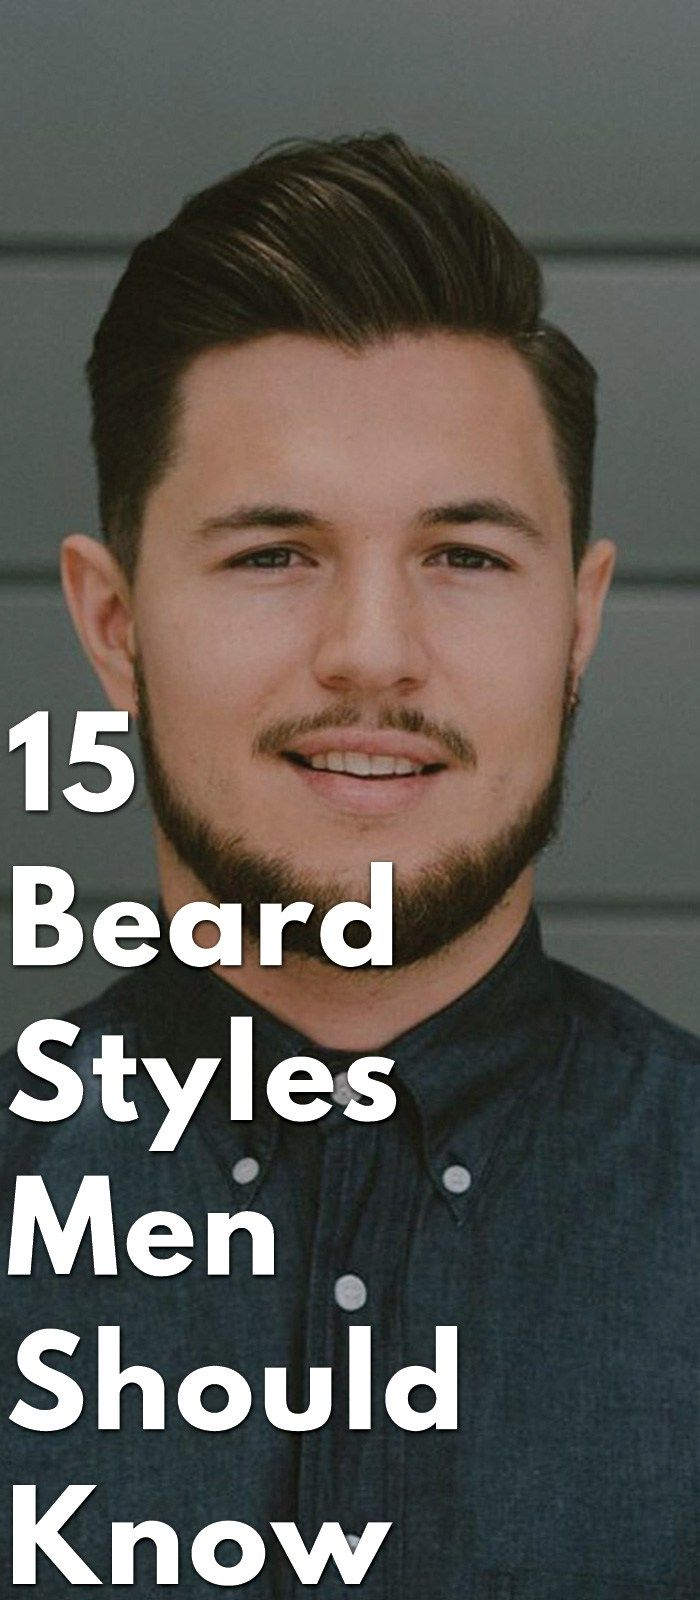 2018 haircuts for men ultimate guide to different beard styles men should know in